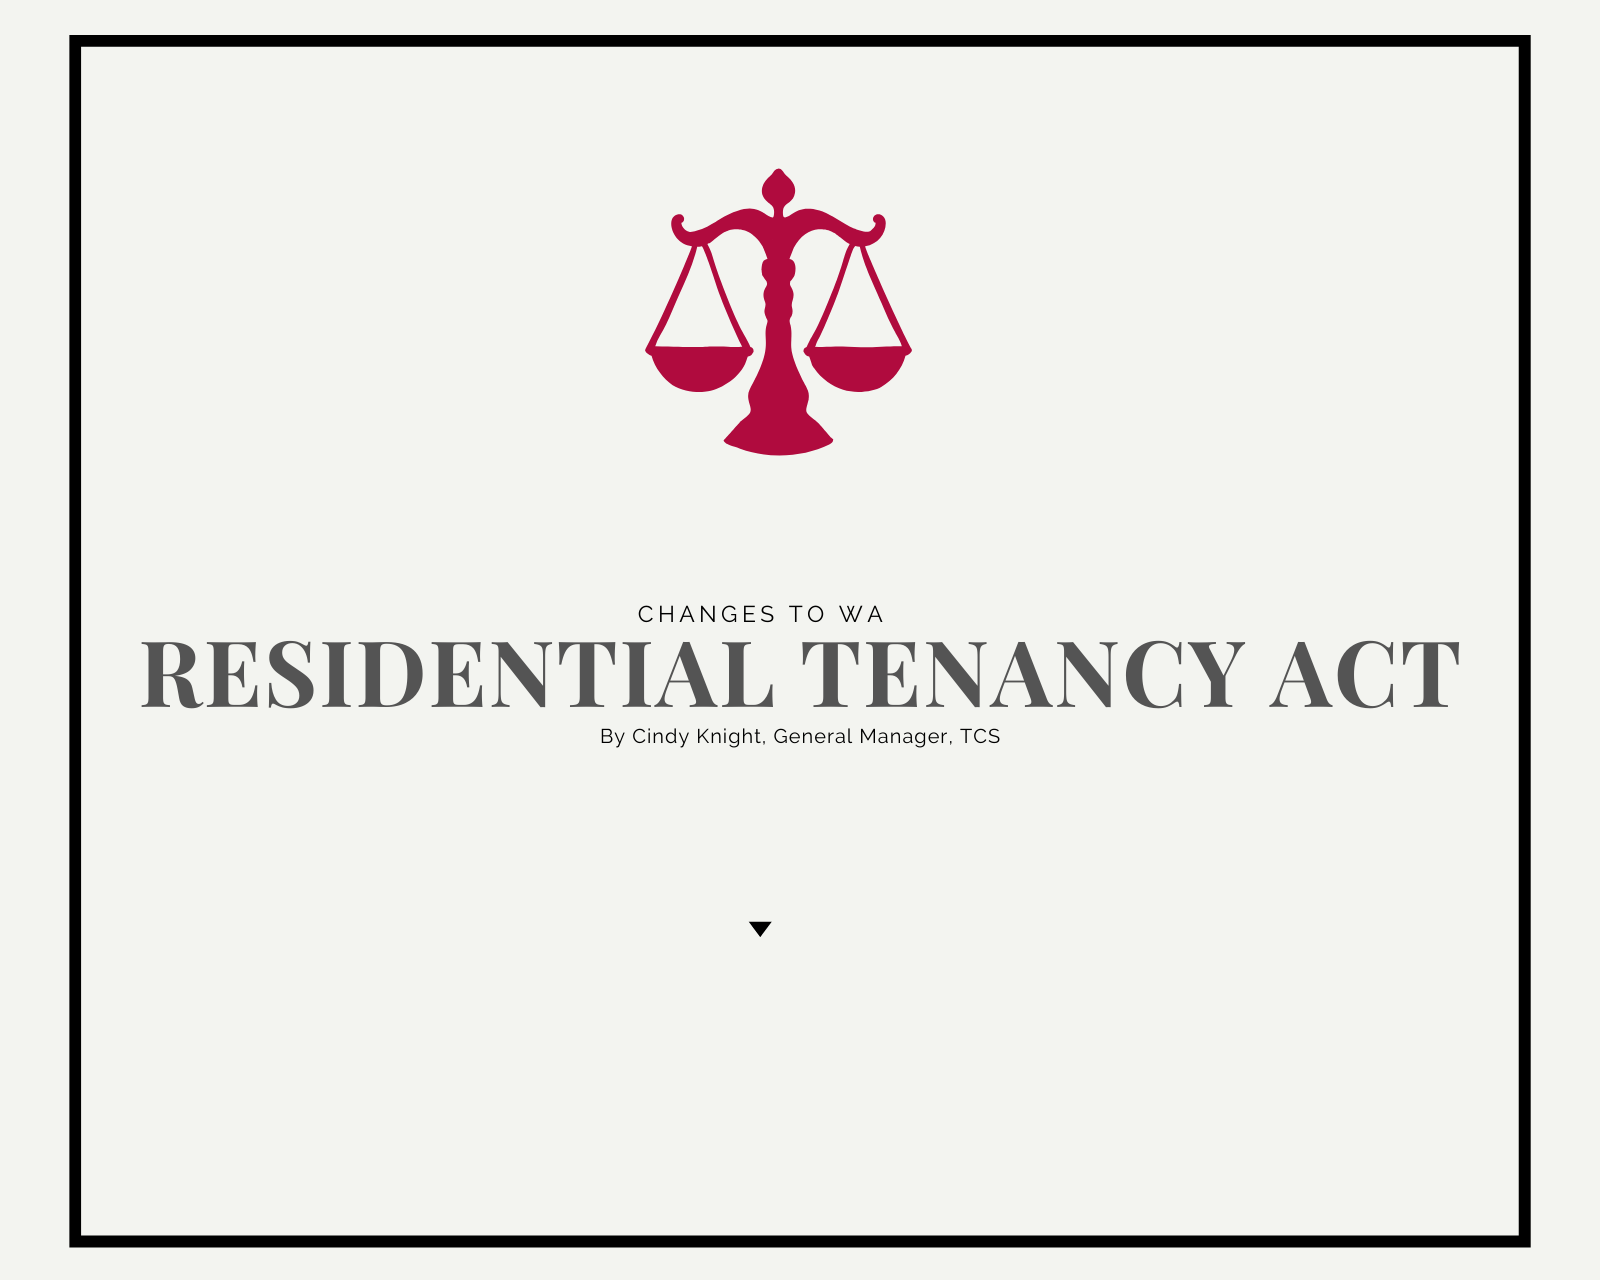 Residential Tenancy Act: WA Changes to Consider